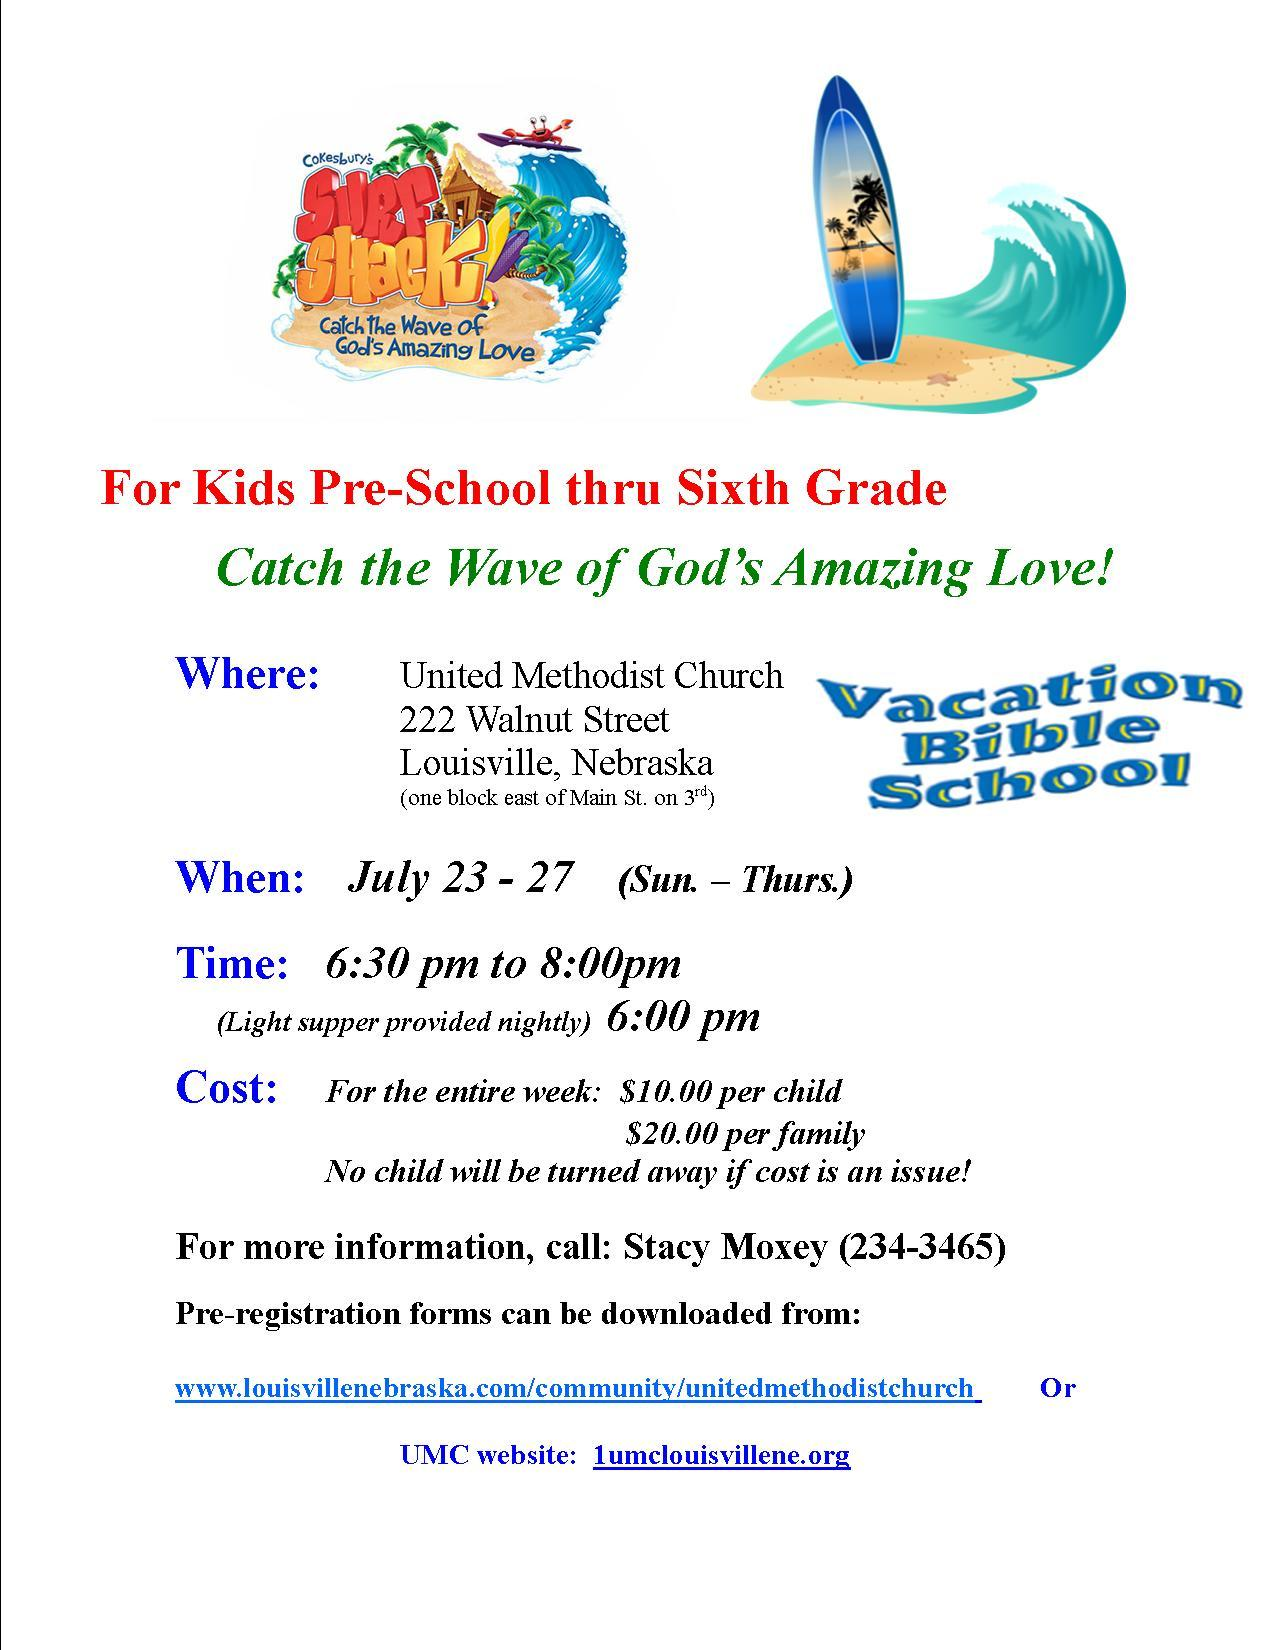 VBS 2017 flyer Catch the Wave